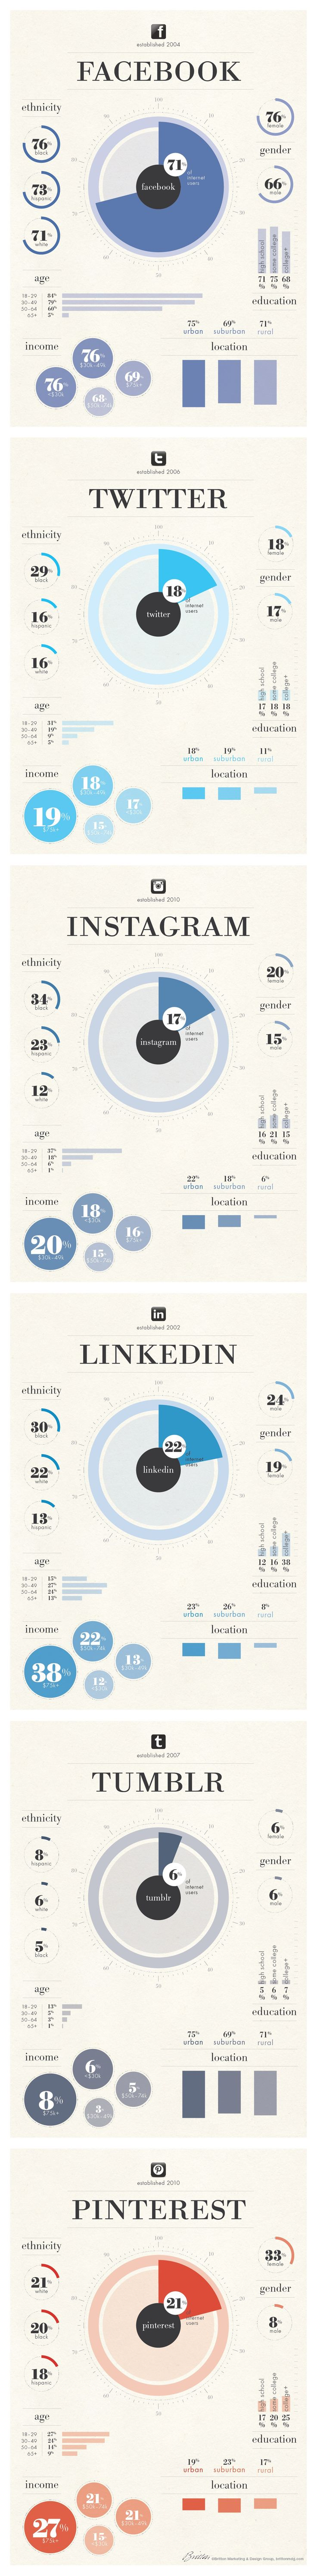 #SocialMedia 2014: User Demographics For Facebook, Twitter, Instagram, LinkedIn, Tumblr and #Pinterest - #infographic